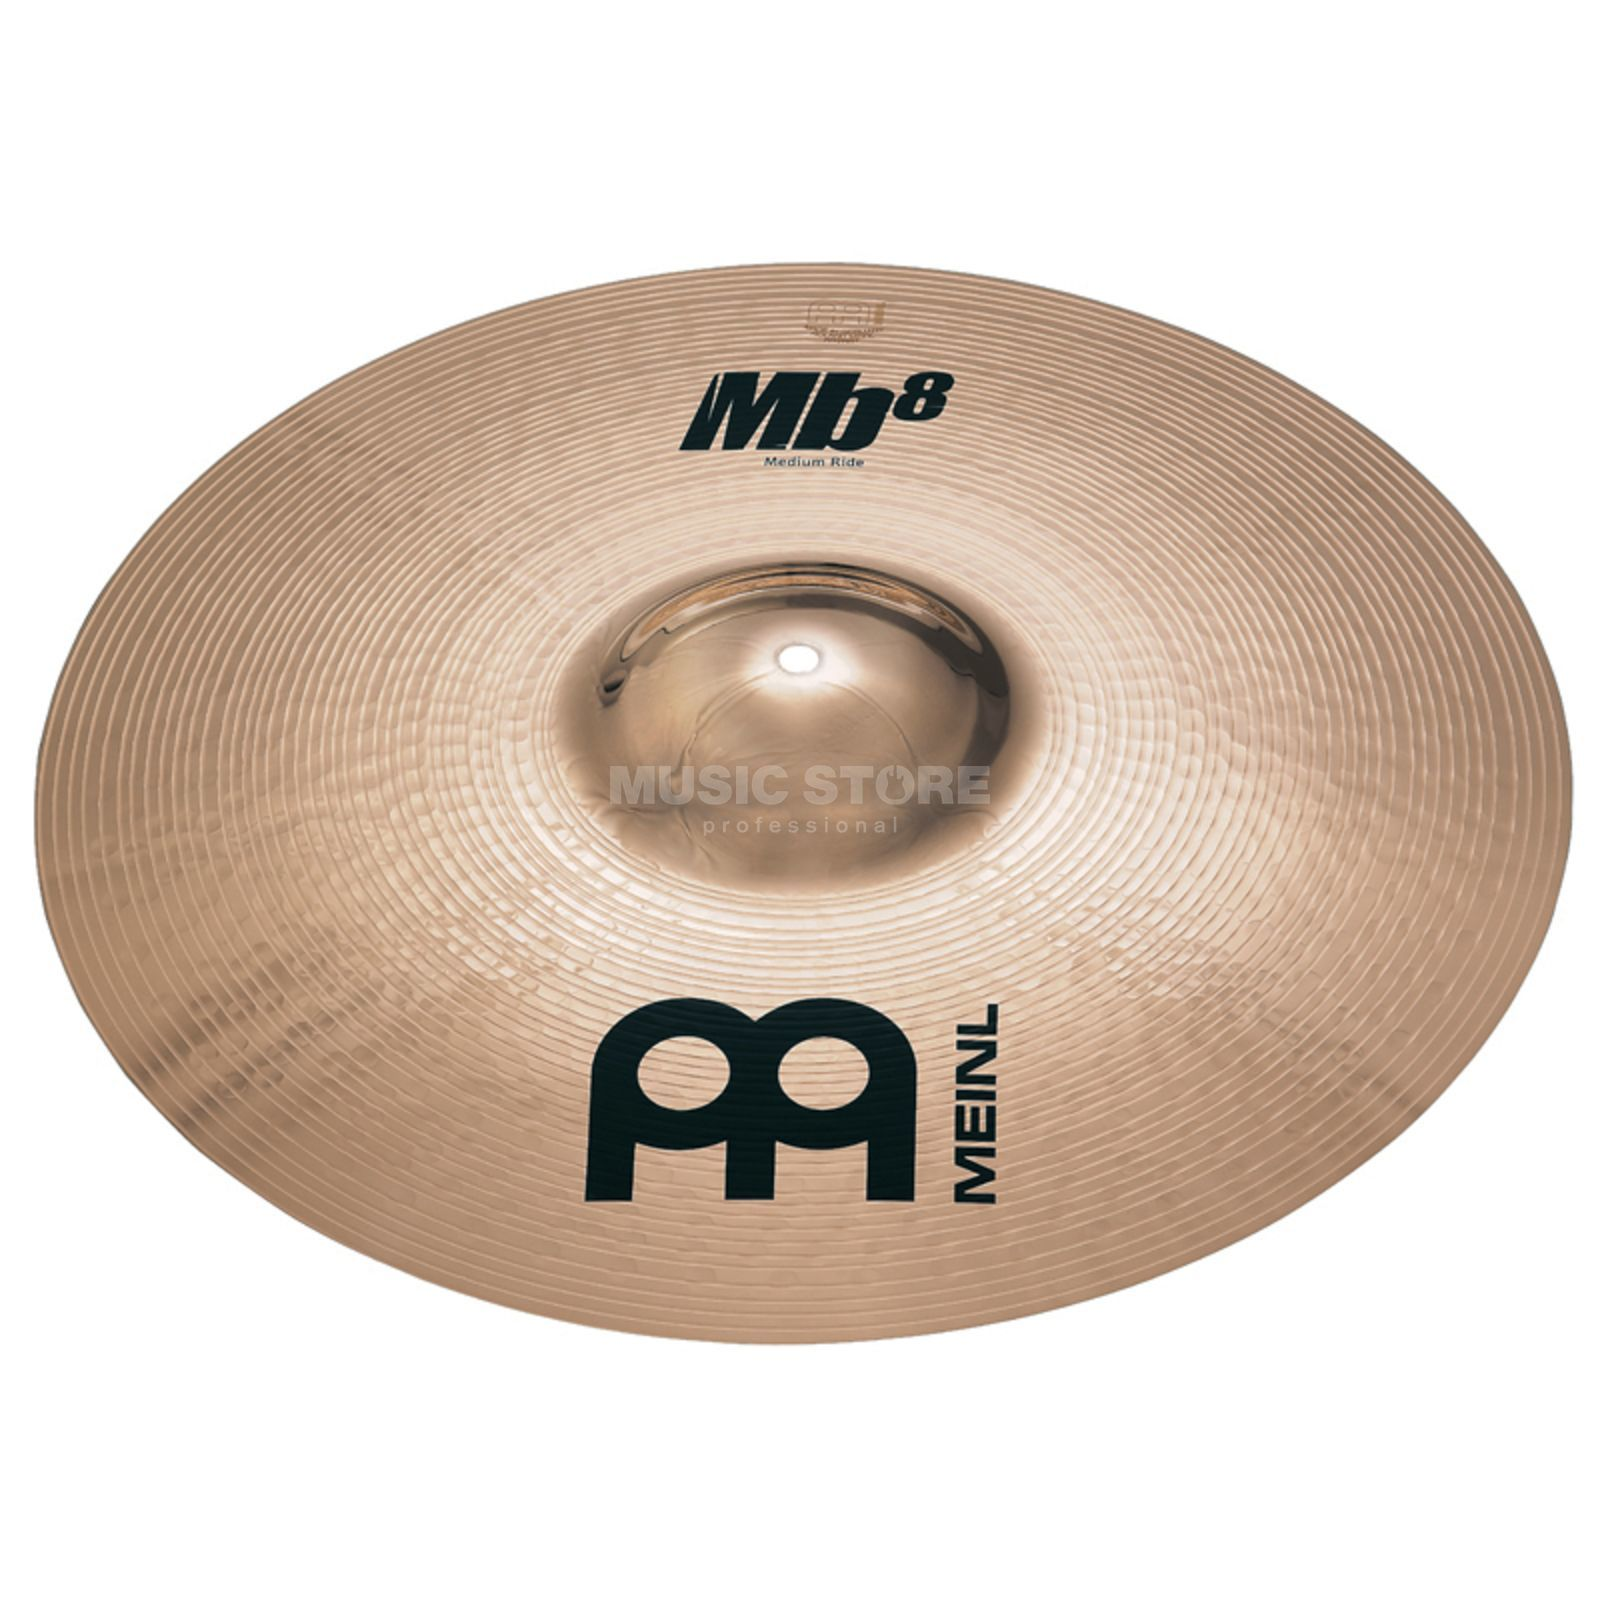 "Meinl MB8 Medium Ride 22"", MB8-22MR-B, Brilliant Finish Zdjęcie produktu"